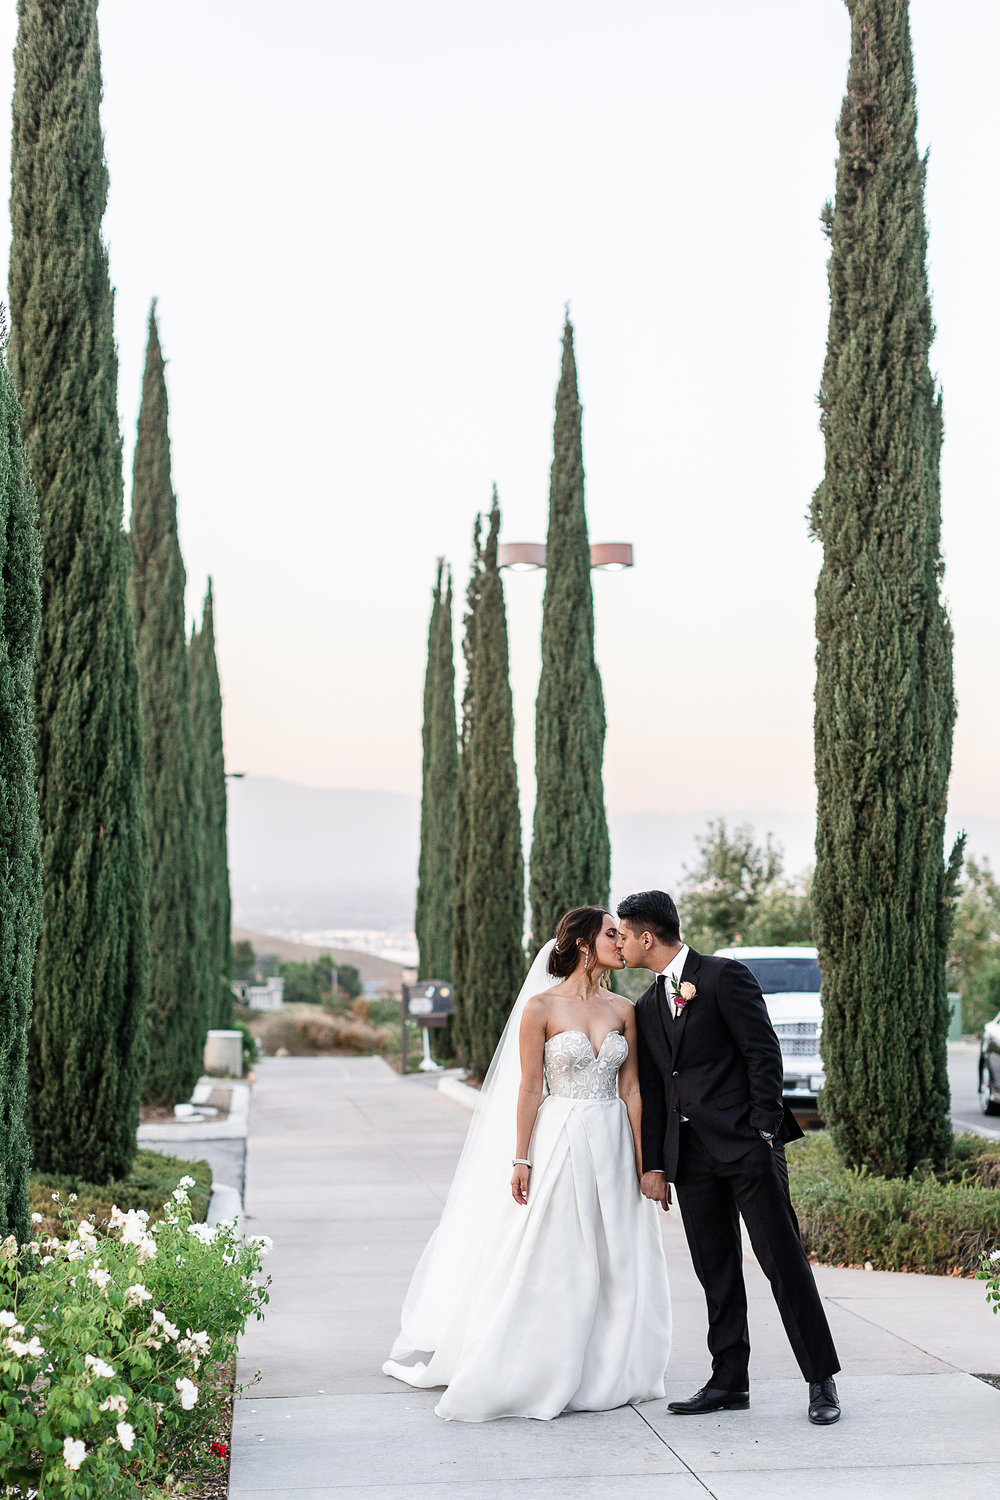 Medina and Arash's Vellano Country Club Wedding, Chino Hills-24.jpg